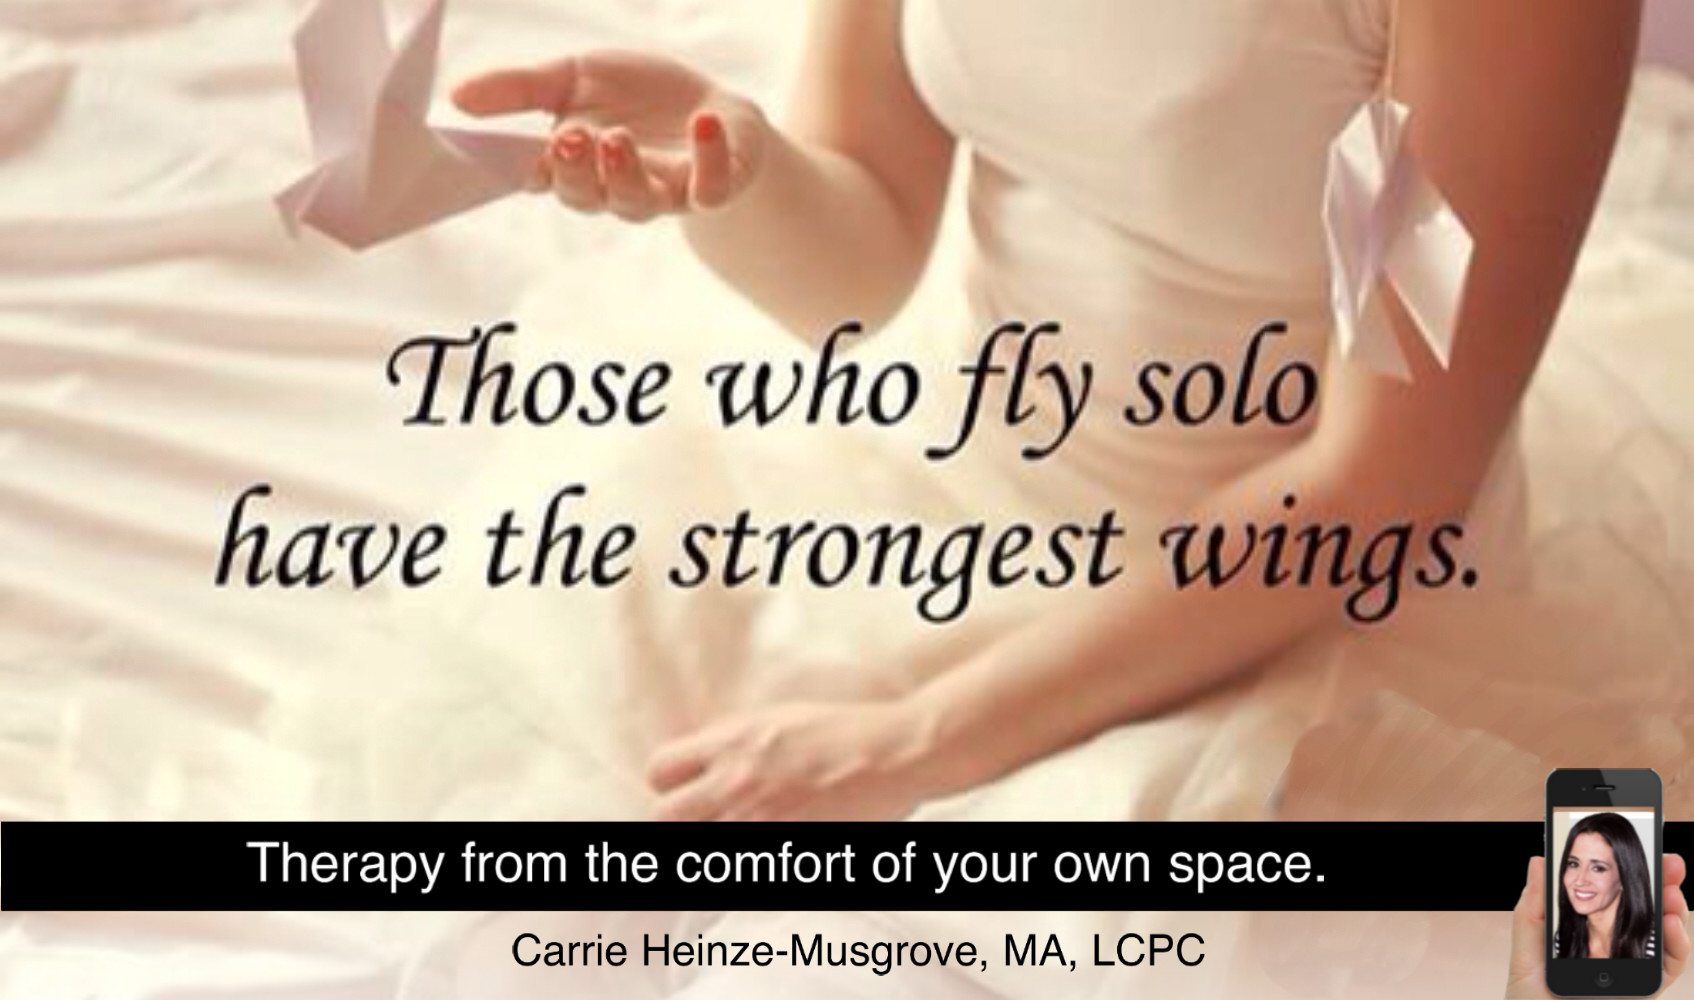 Those who fly solo have the strongest wings  | Carrie Heinze